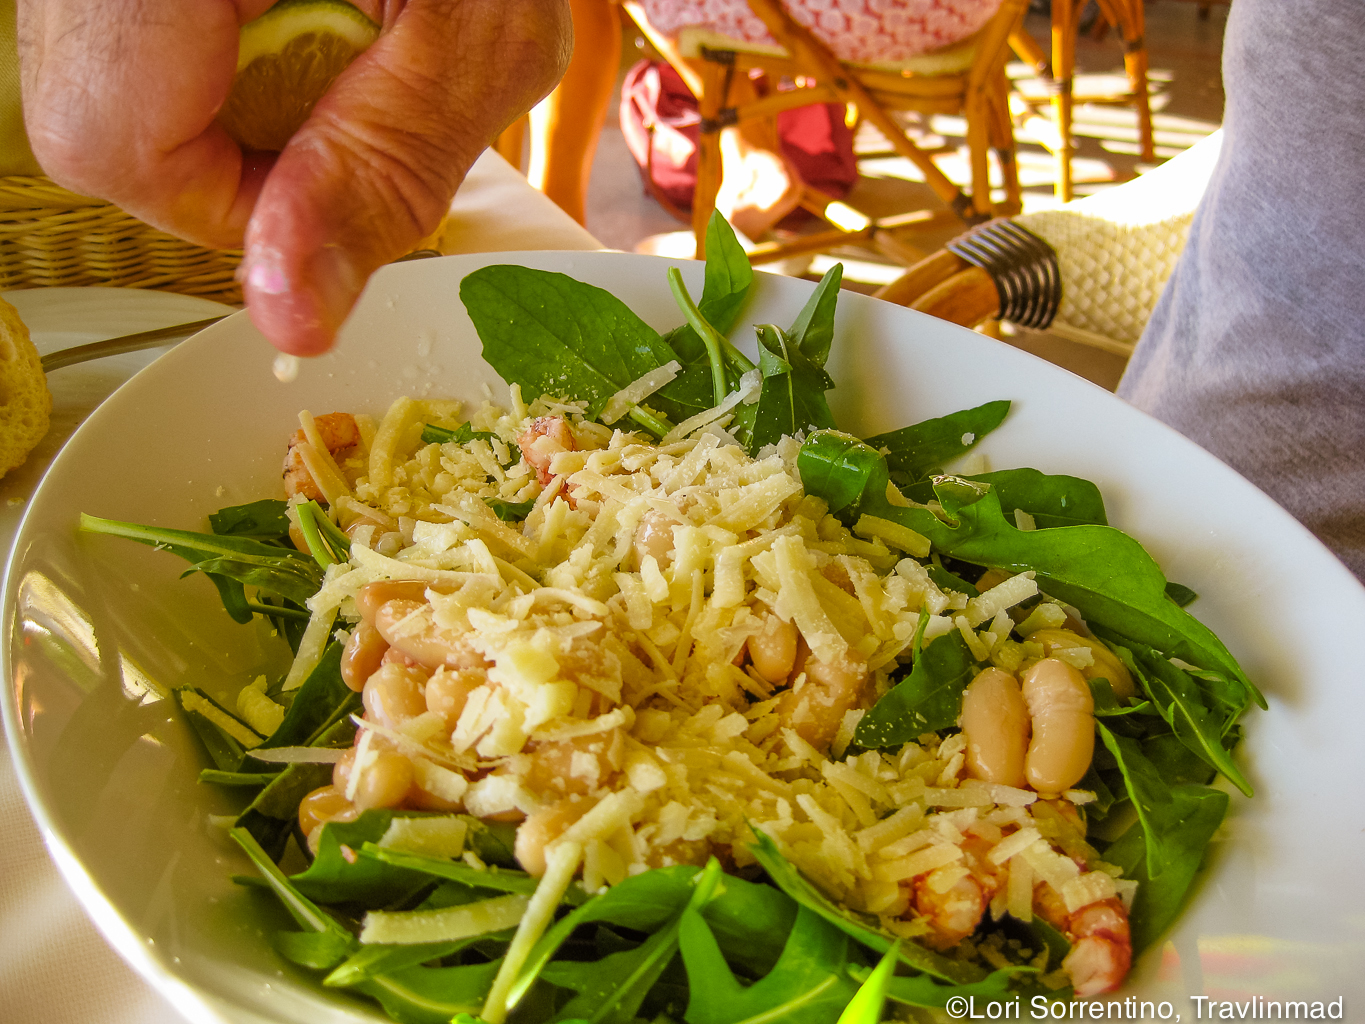 Fresh rocket/arugala salad with bean and seafood